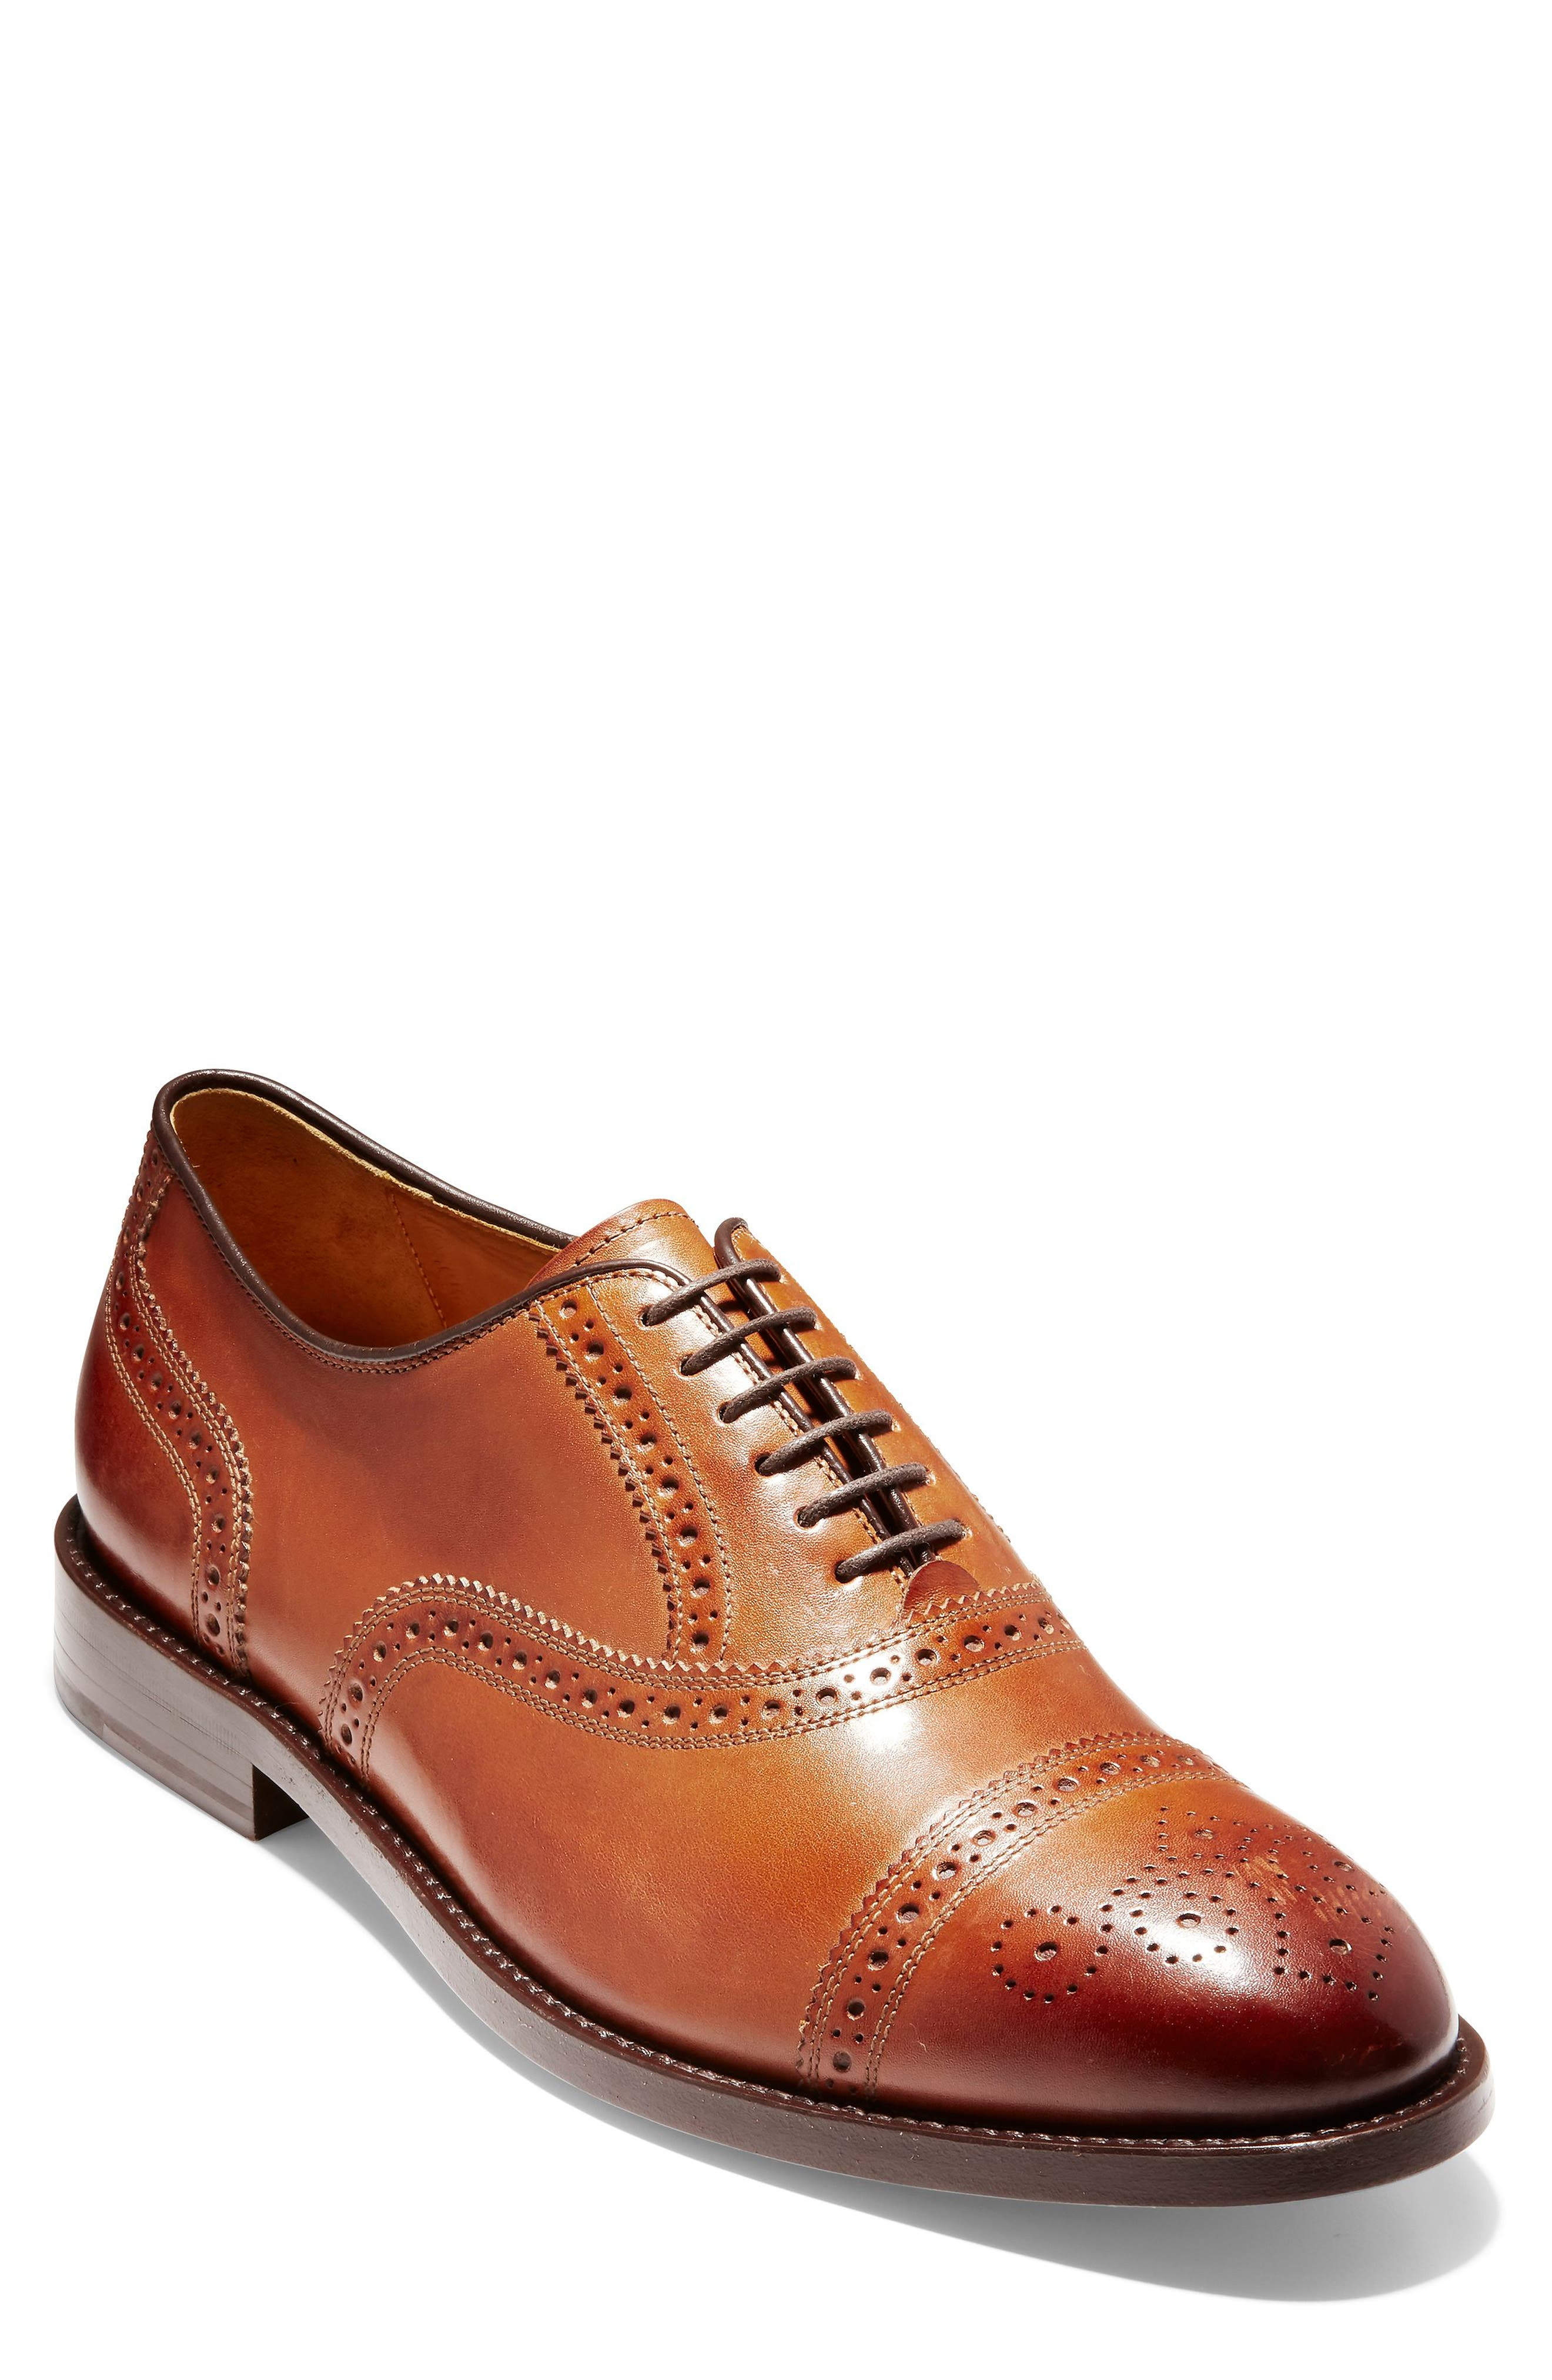 COLE HAAN American Classics Kneeland Cap Toe Oxford, Main, color, BRITISH TAN LEATHER